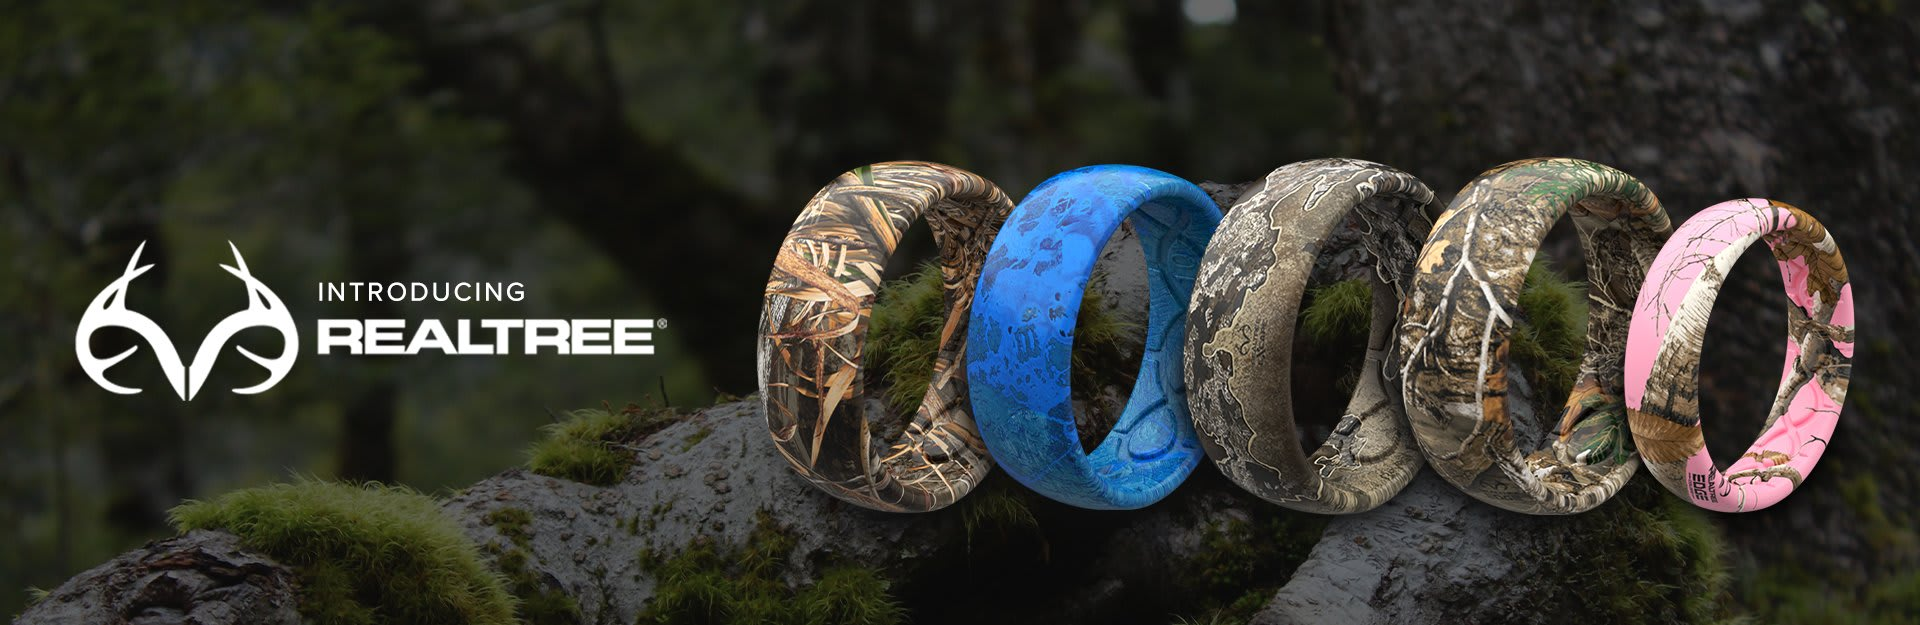 Realtree, many realtree rings are overlaid on a background of a forest